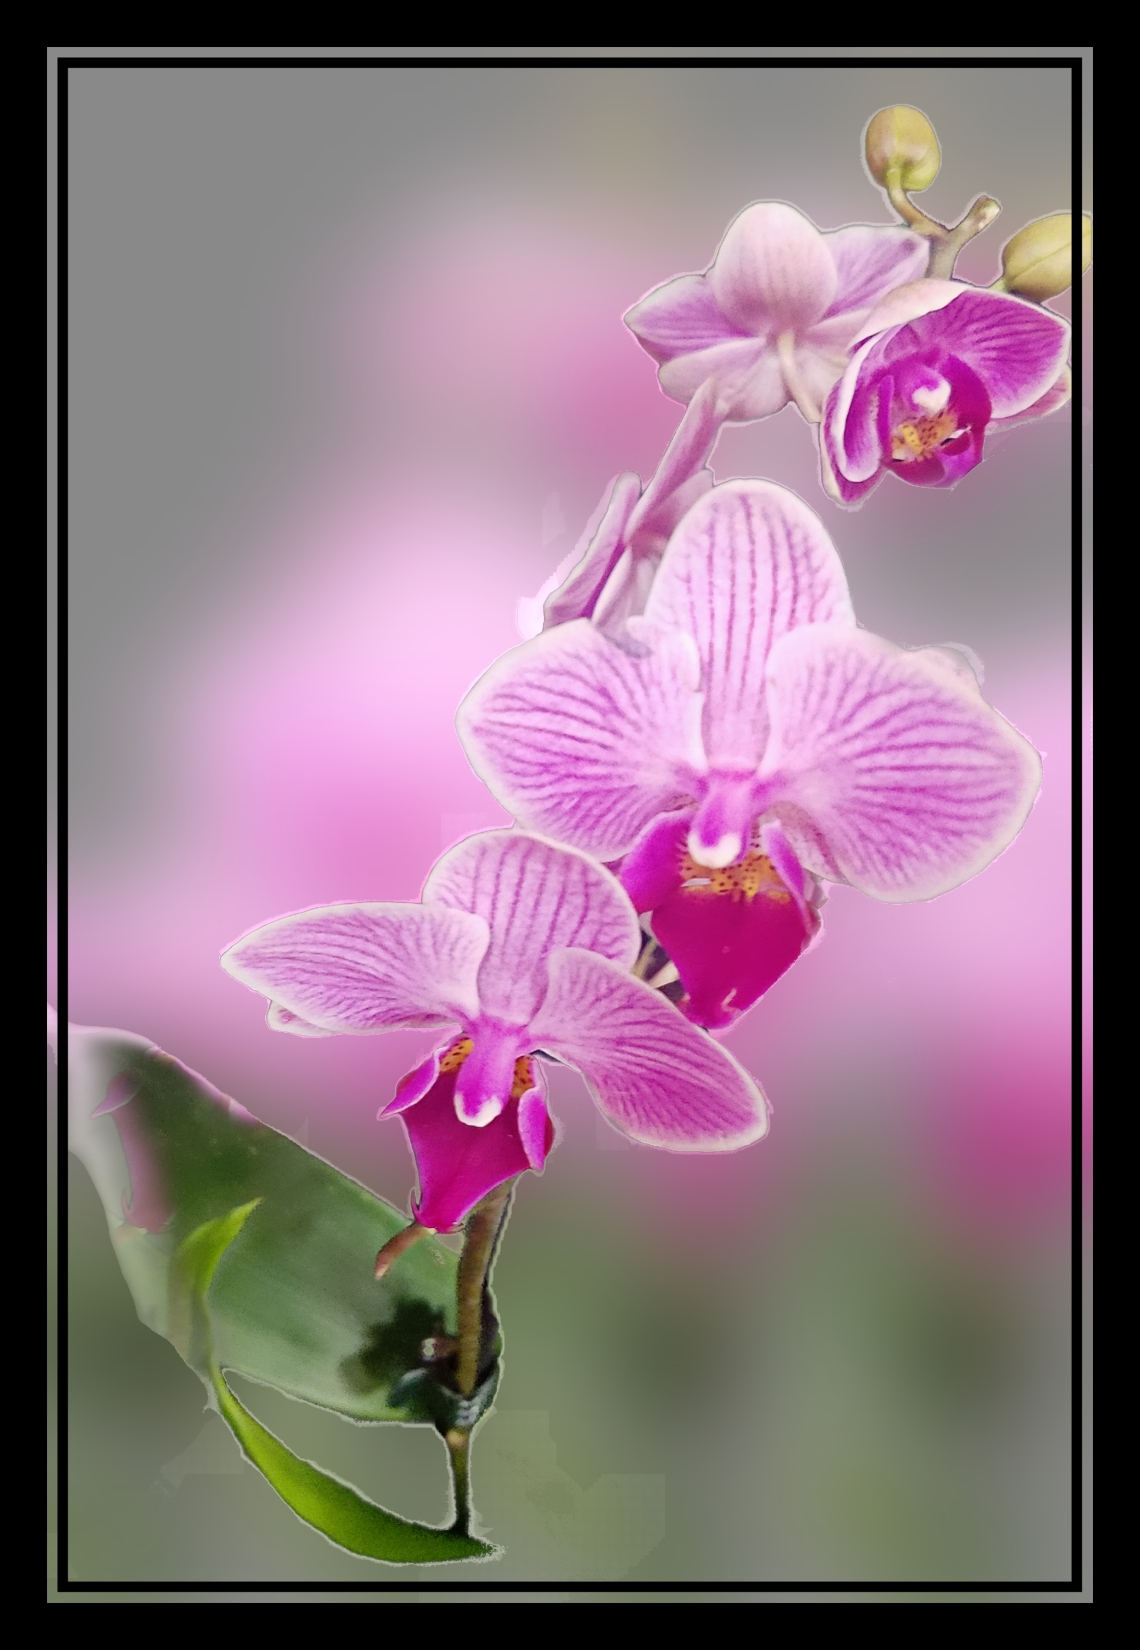 00-orchid-purple-glass-20171209_172116_3border